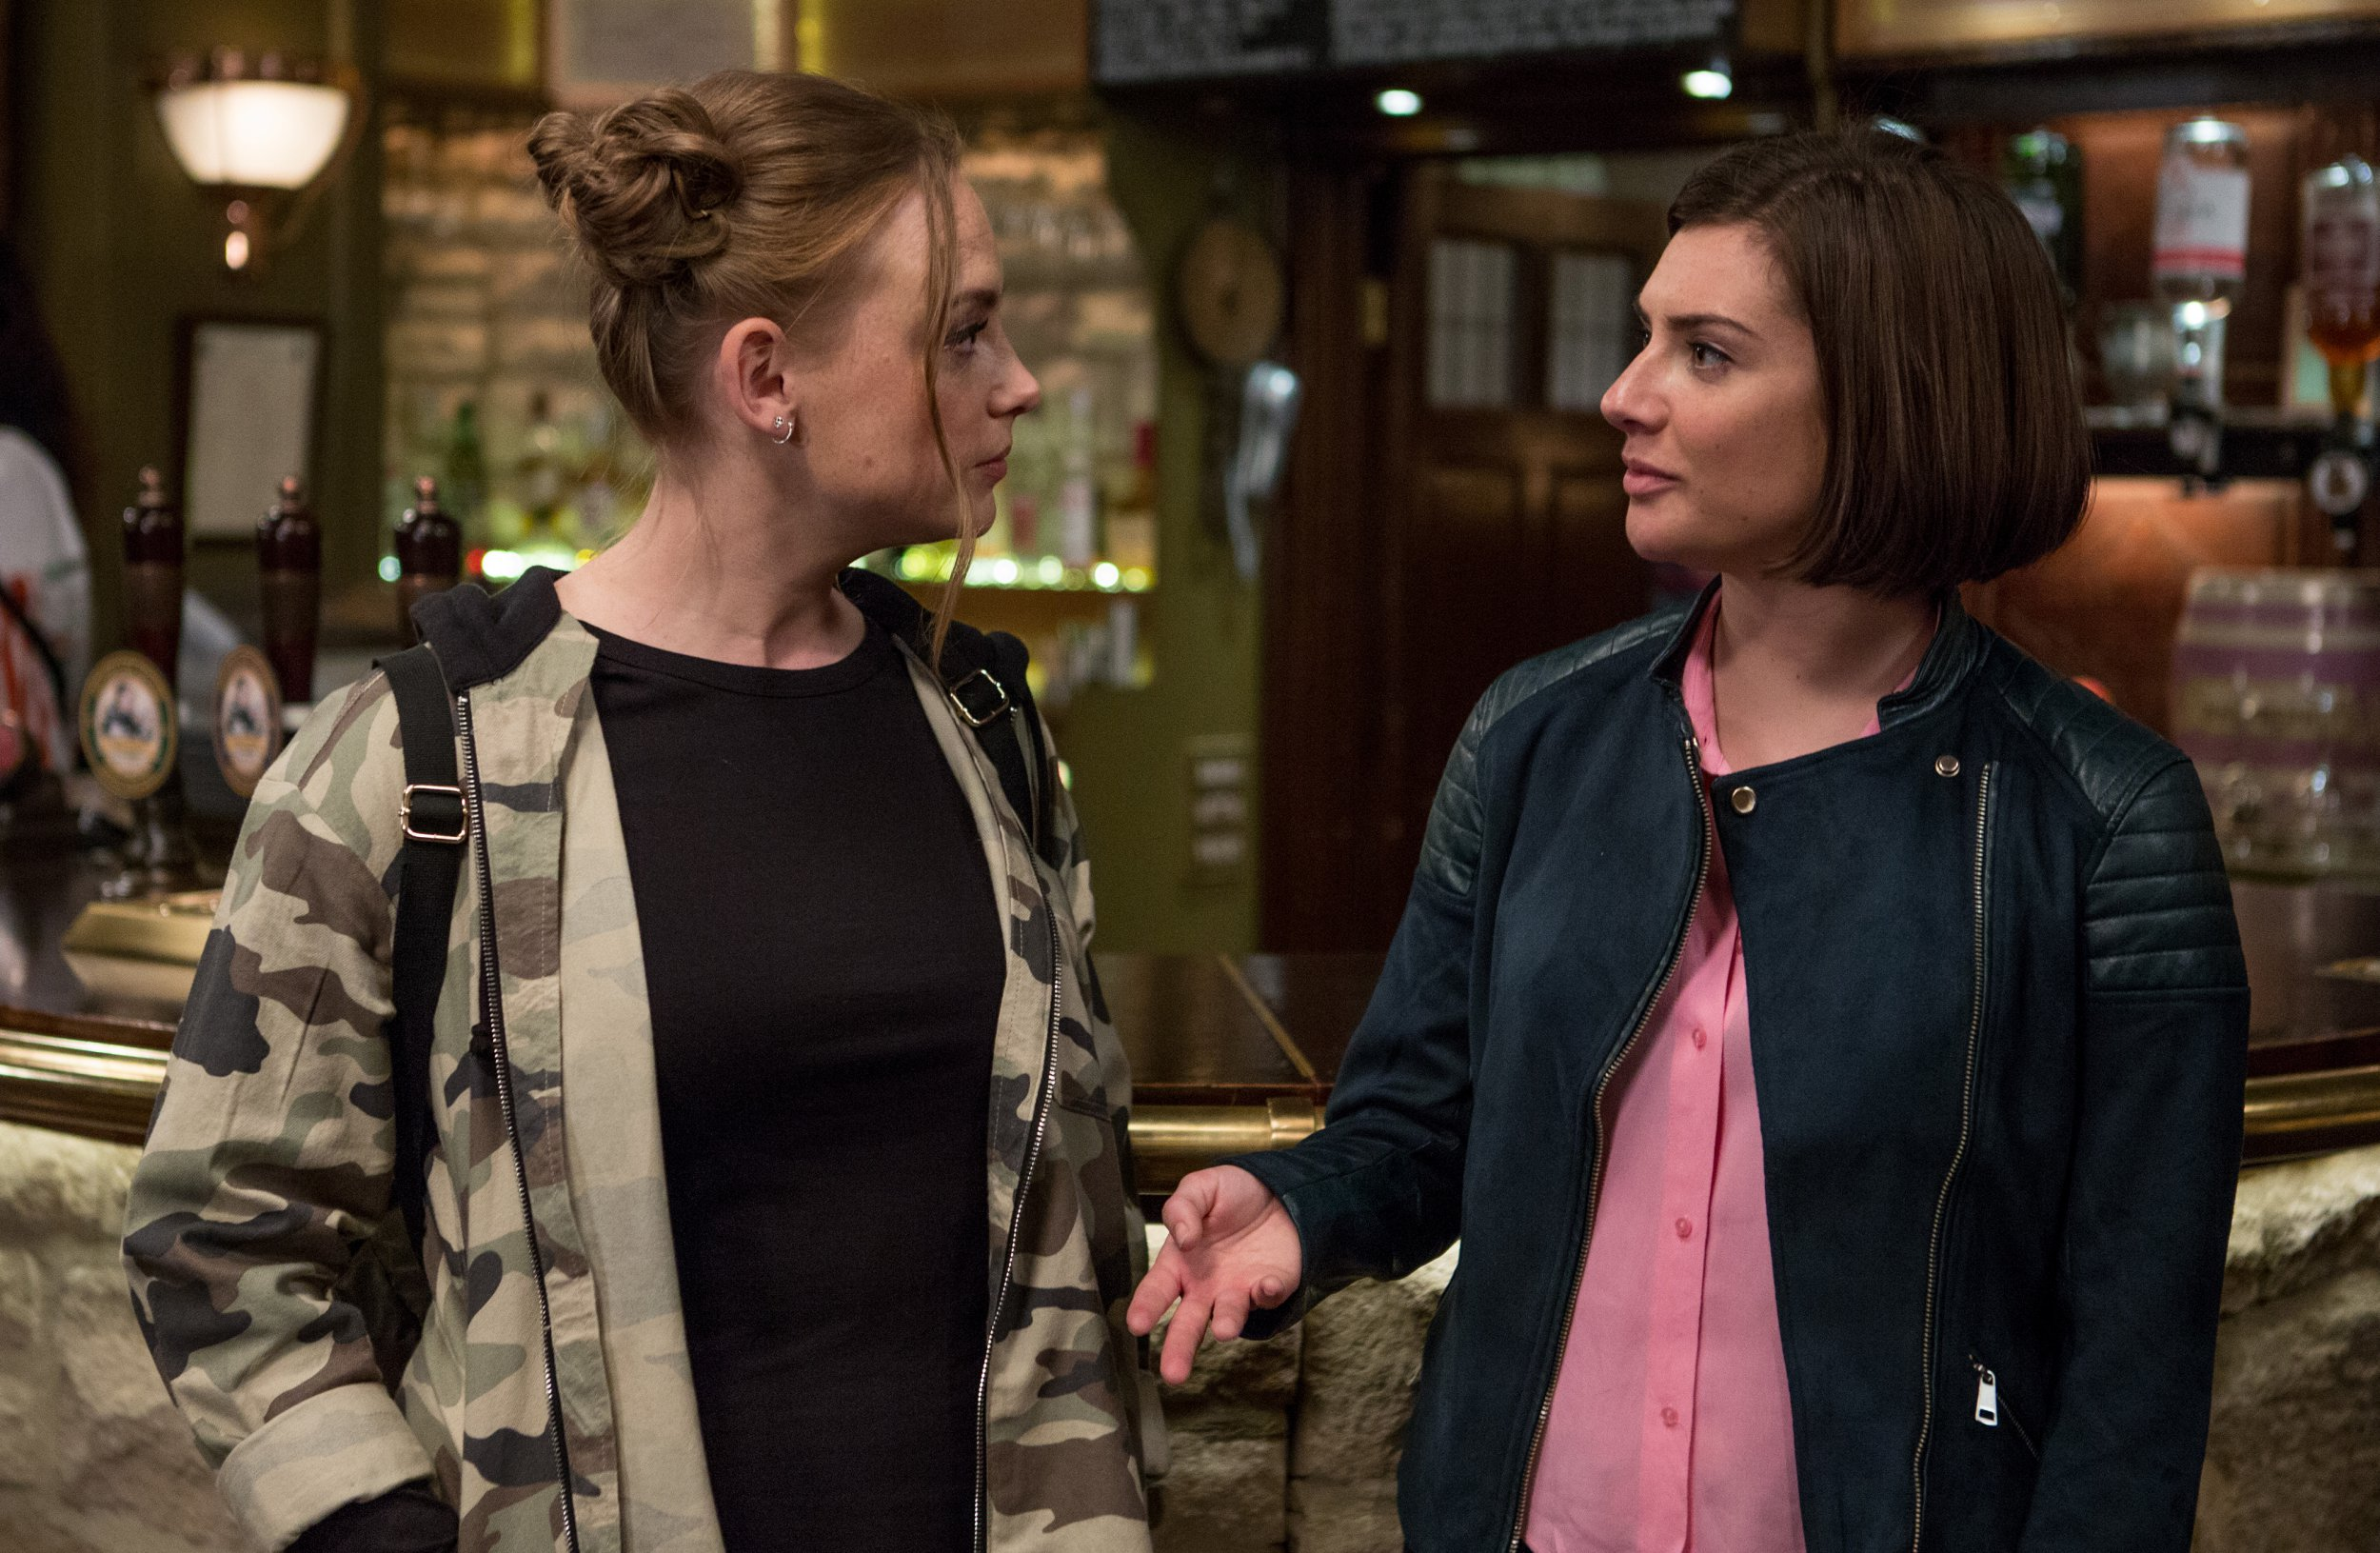 Amy (Natalie Jamieson) tells Victoria (Isobel Hodgins) to play hard to get